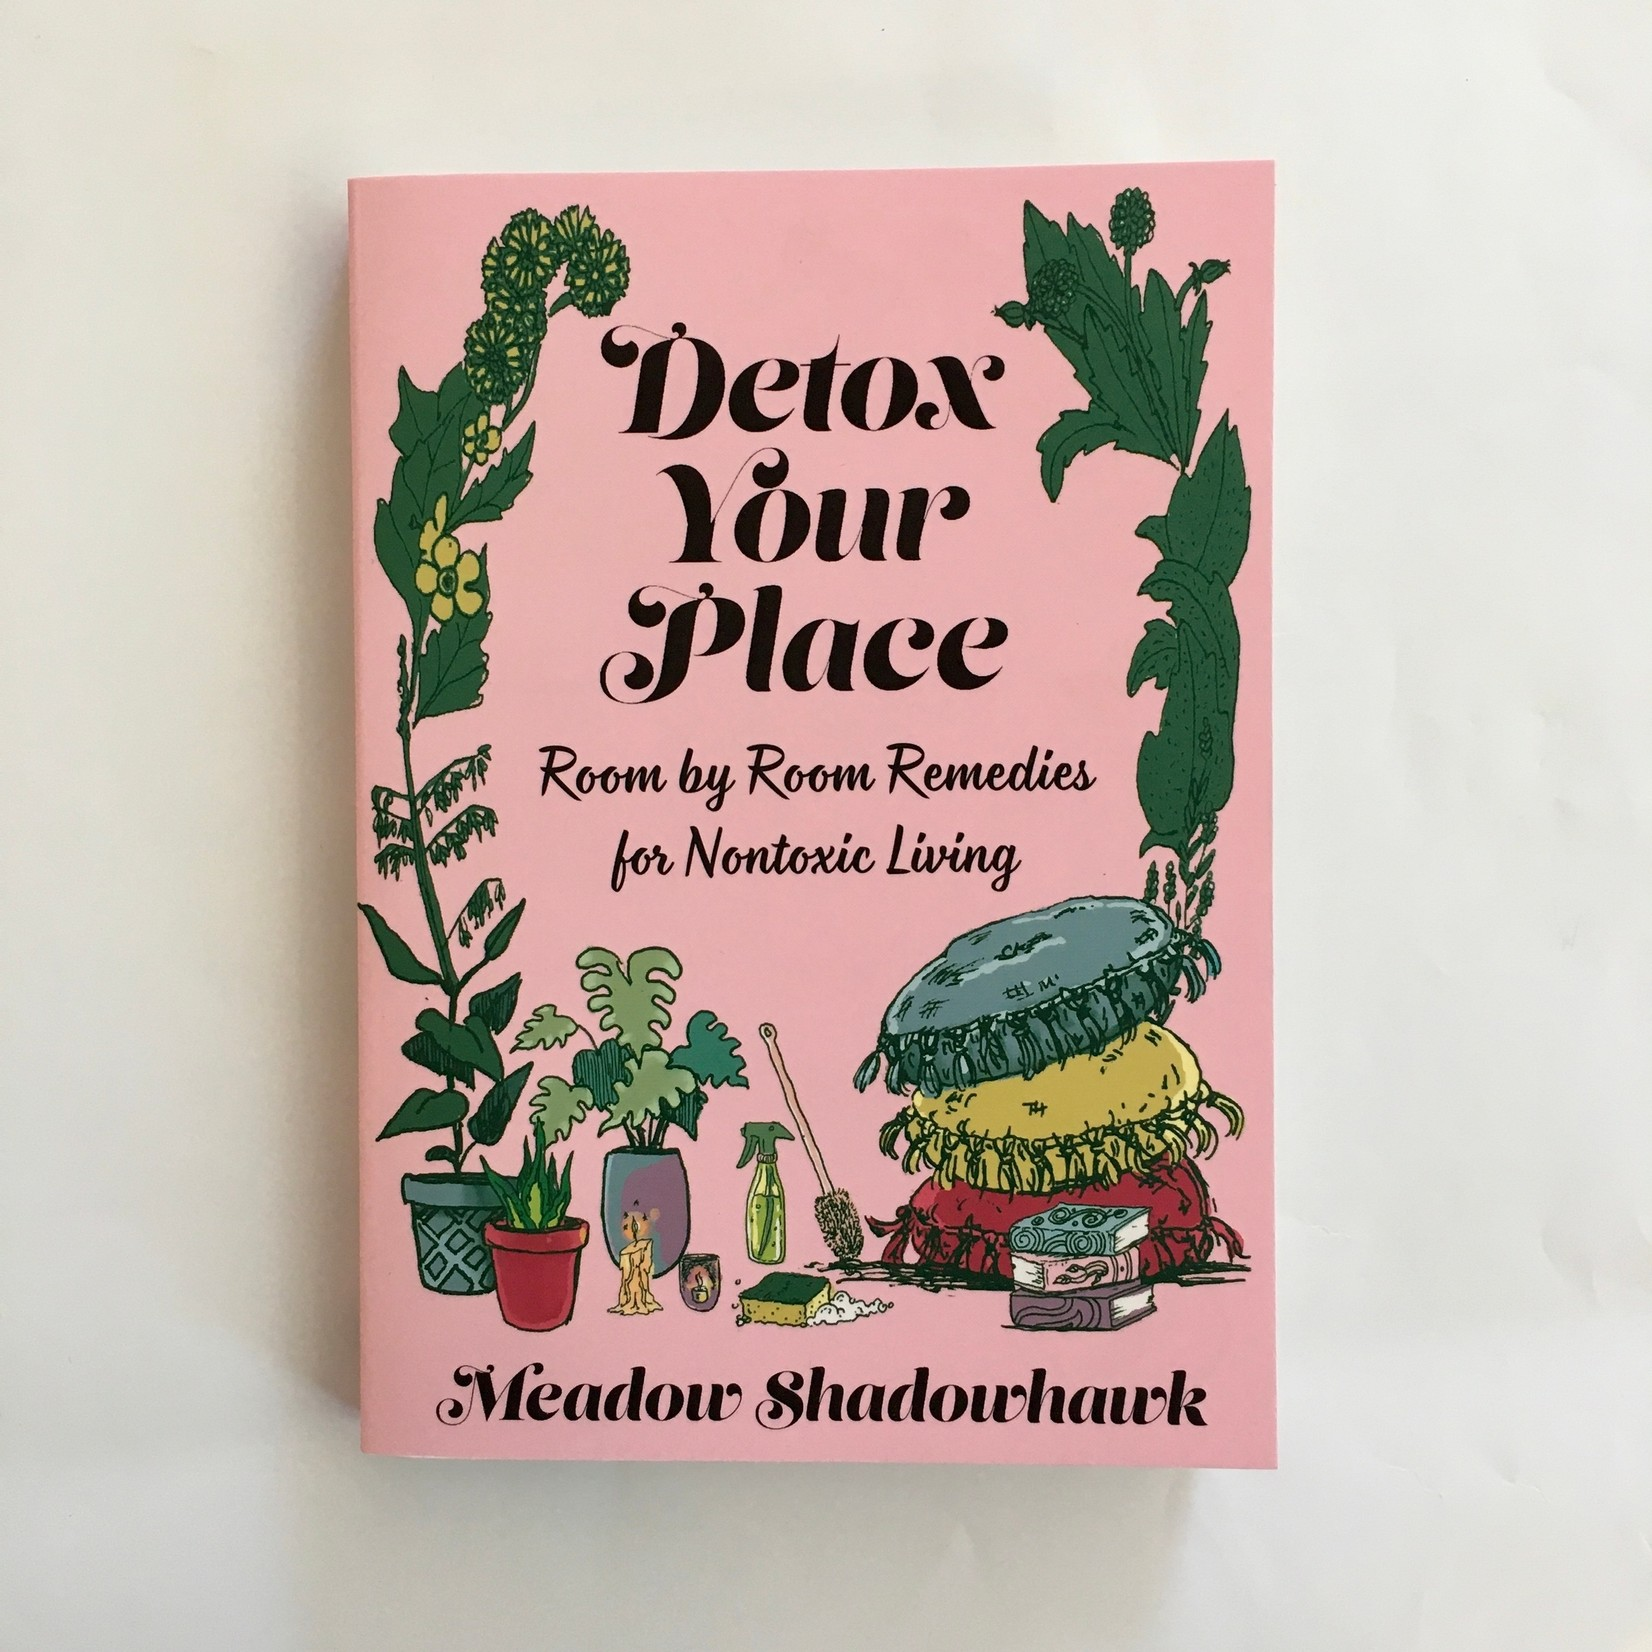 Detox Your Place : Room by Room Remedies for Nontoxic Living